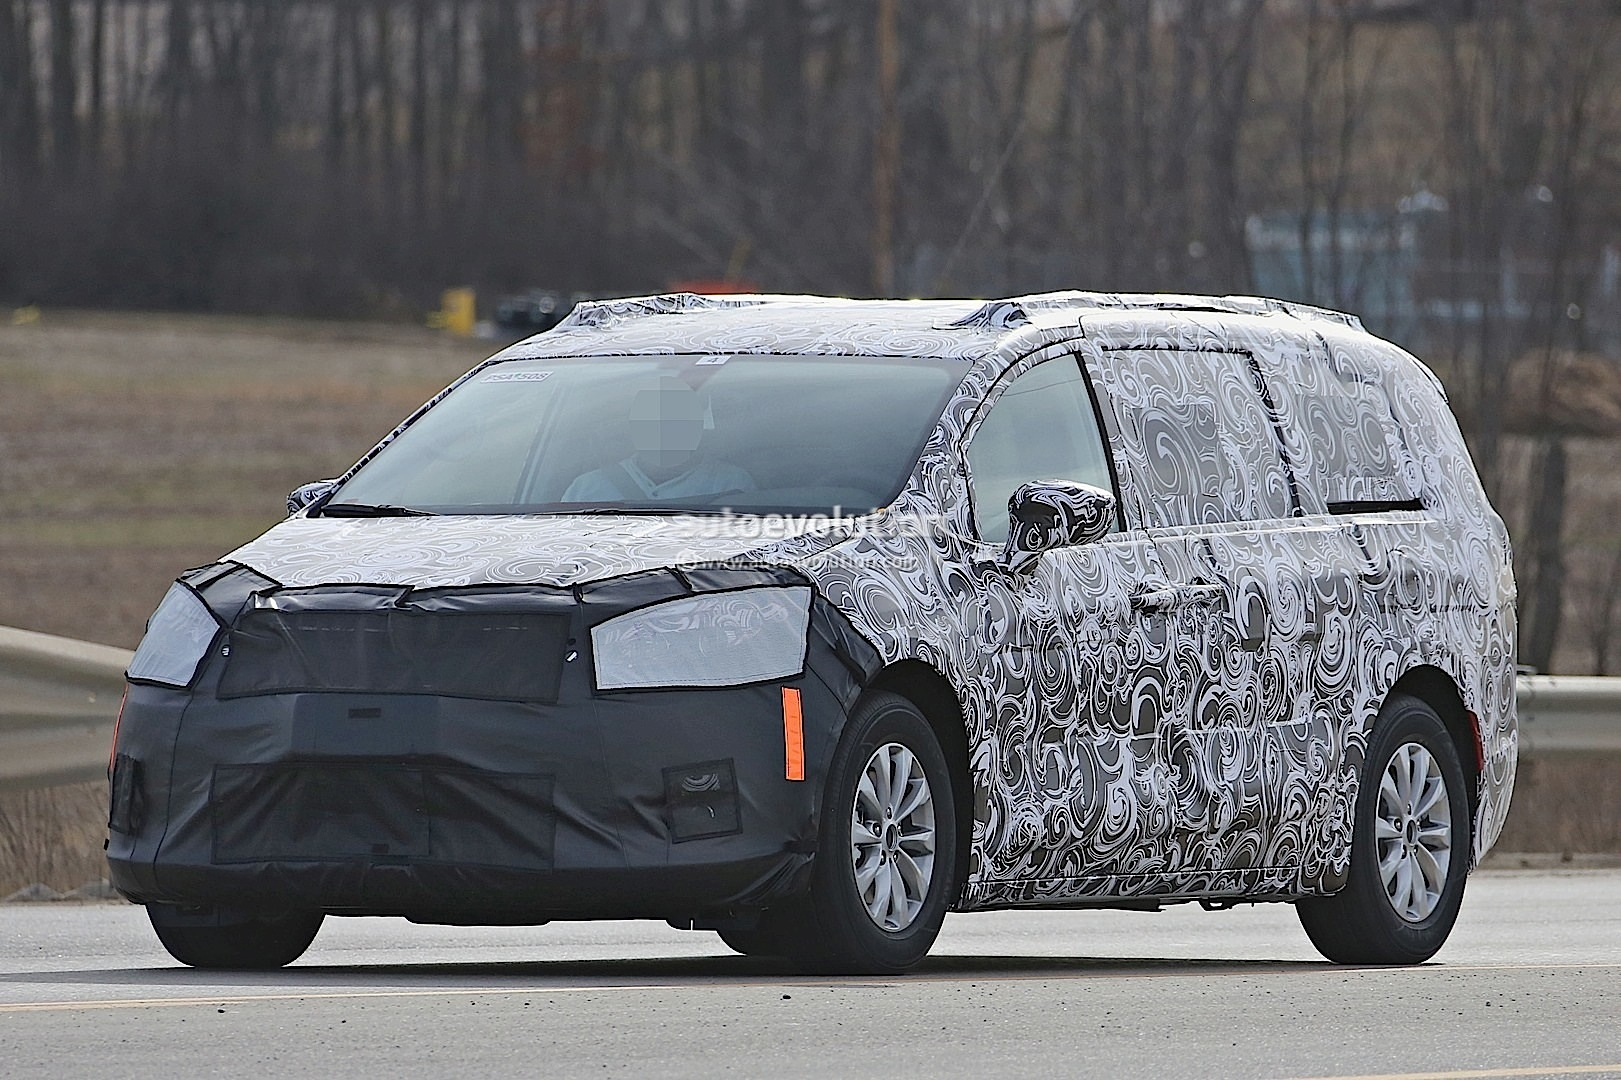 2017 Chrysler Town And Country >> 2017 Chrysler Town Country Silhouette Revealed In Latest